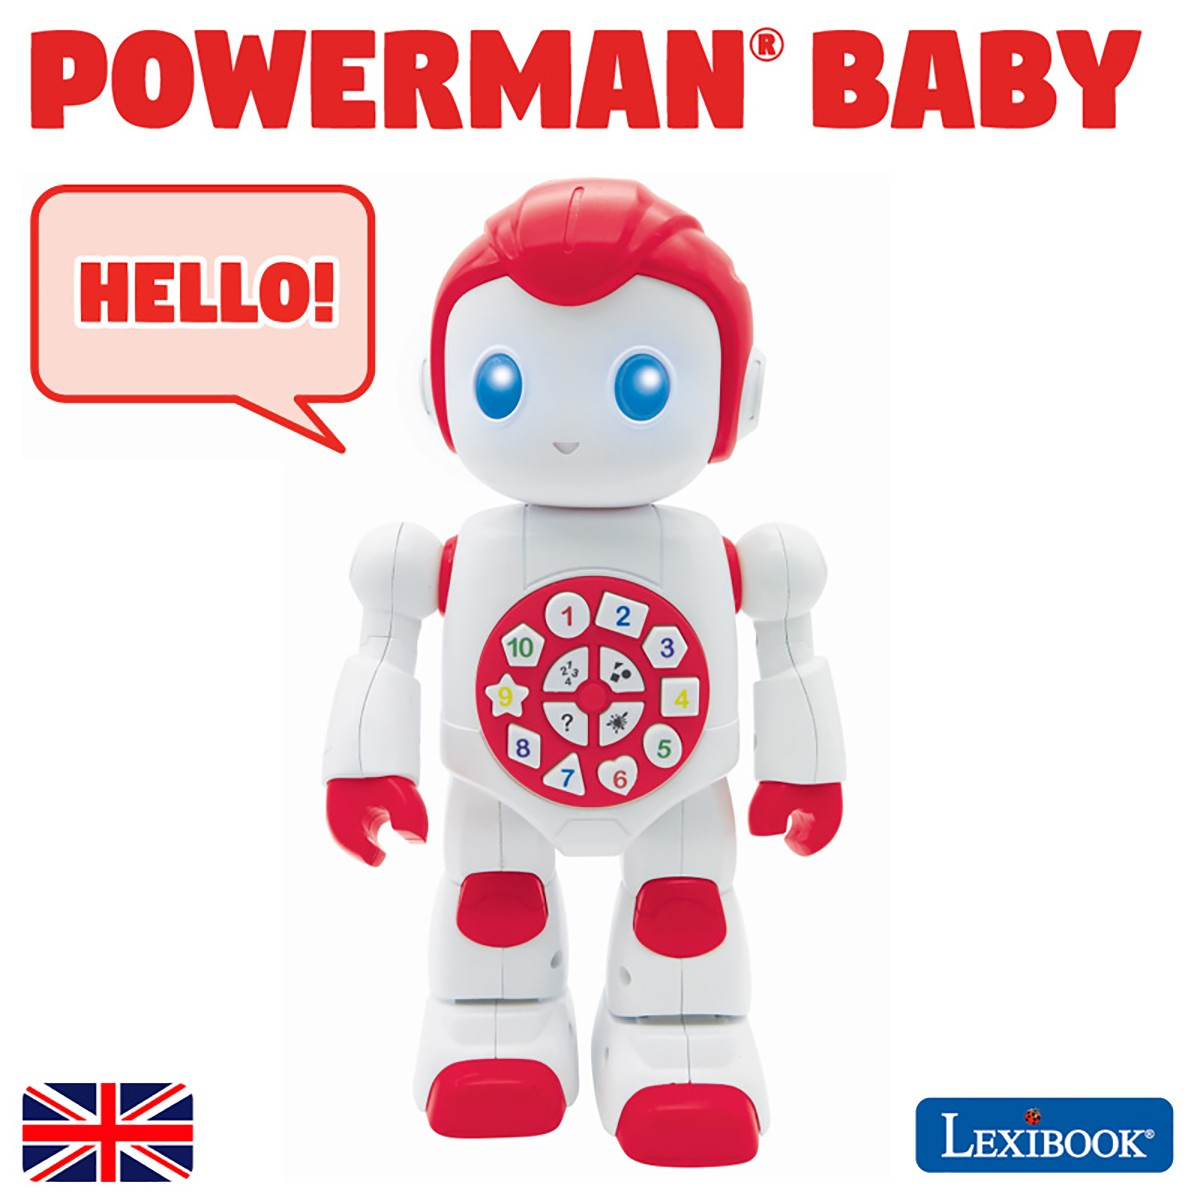 Powerman Baby Smart Interactive Toy Learning Robot Toy for Kids